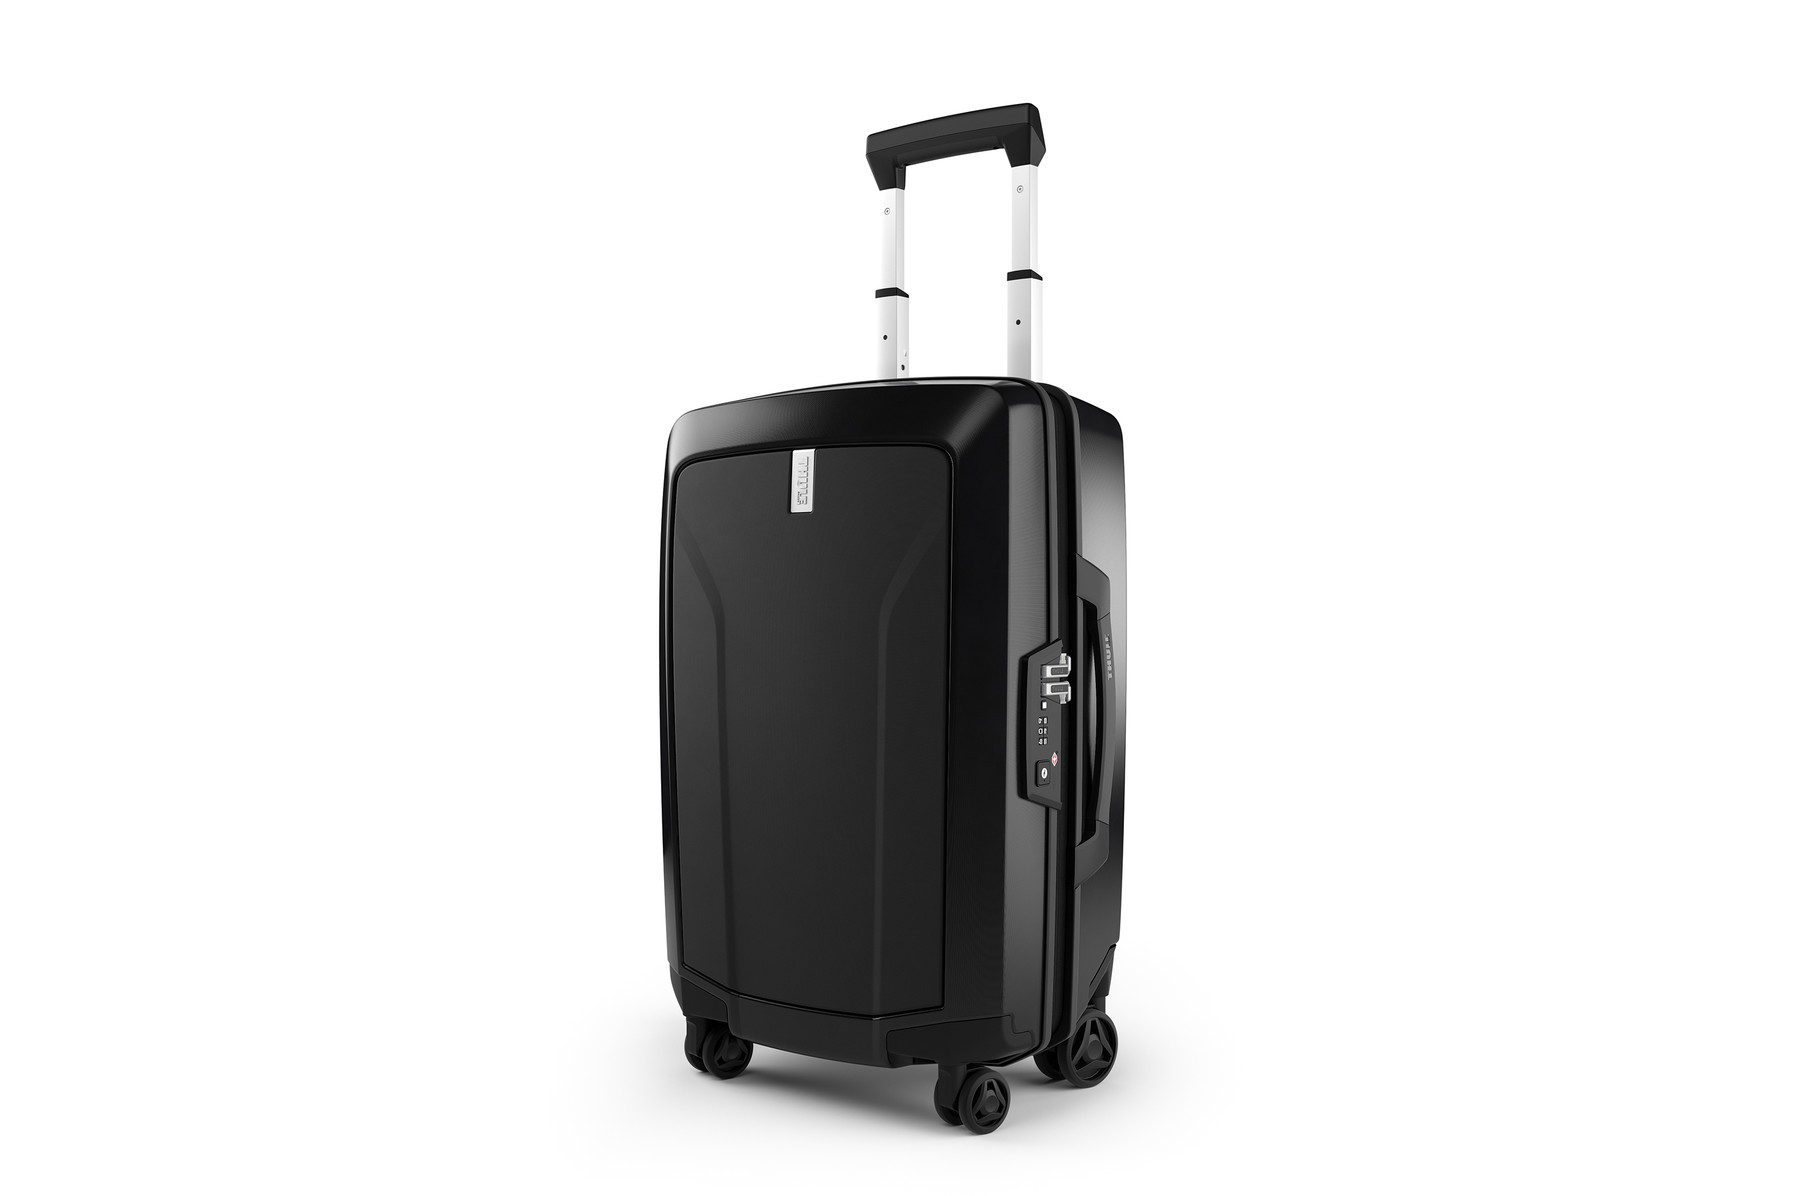 Thule Revolve Global Carryon